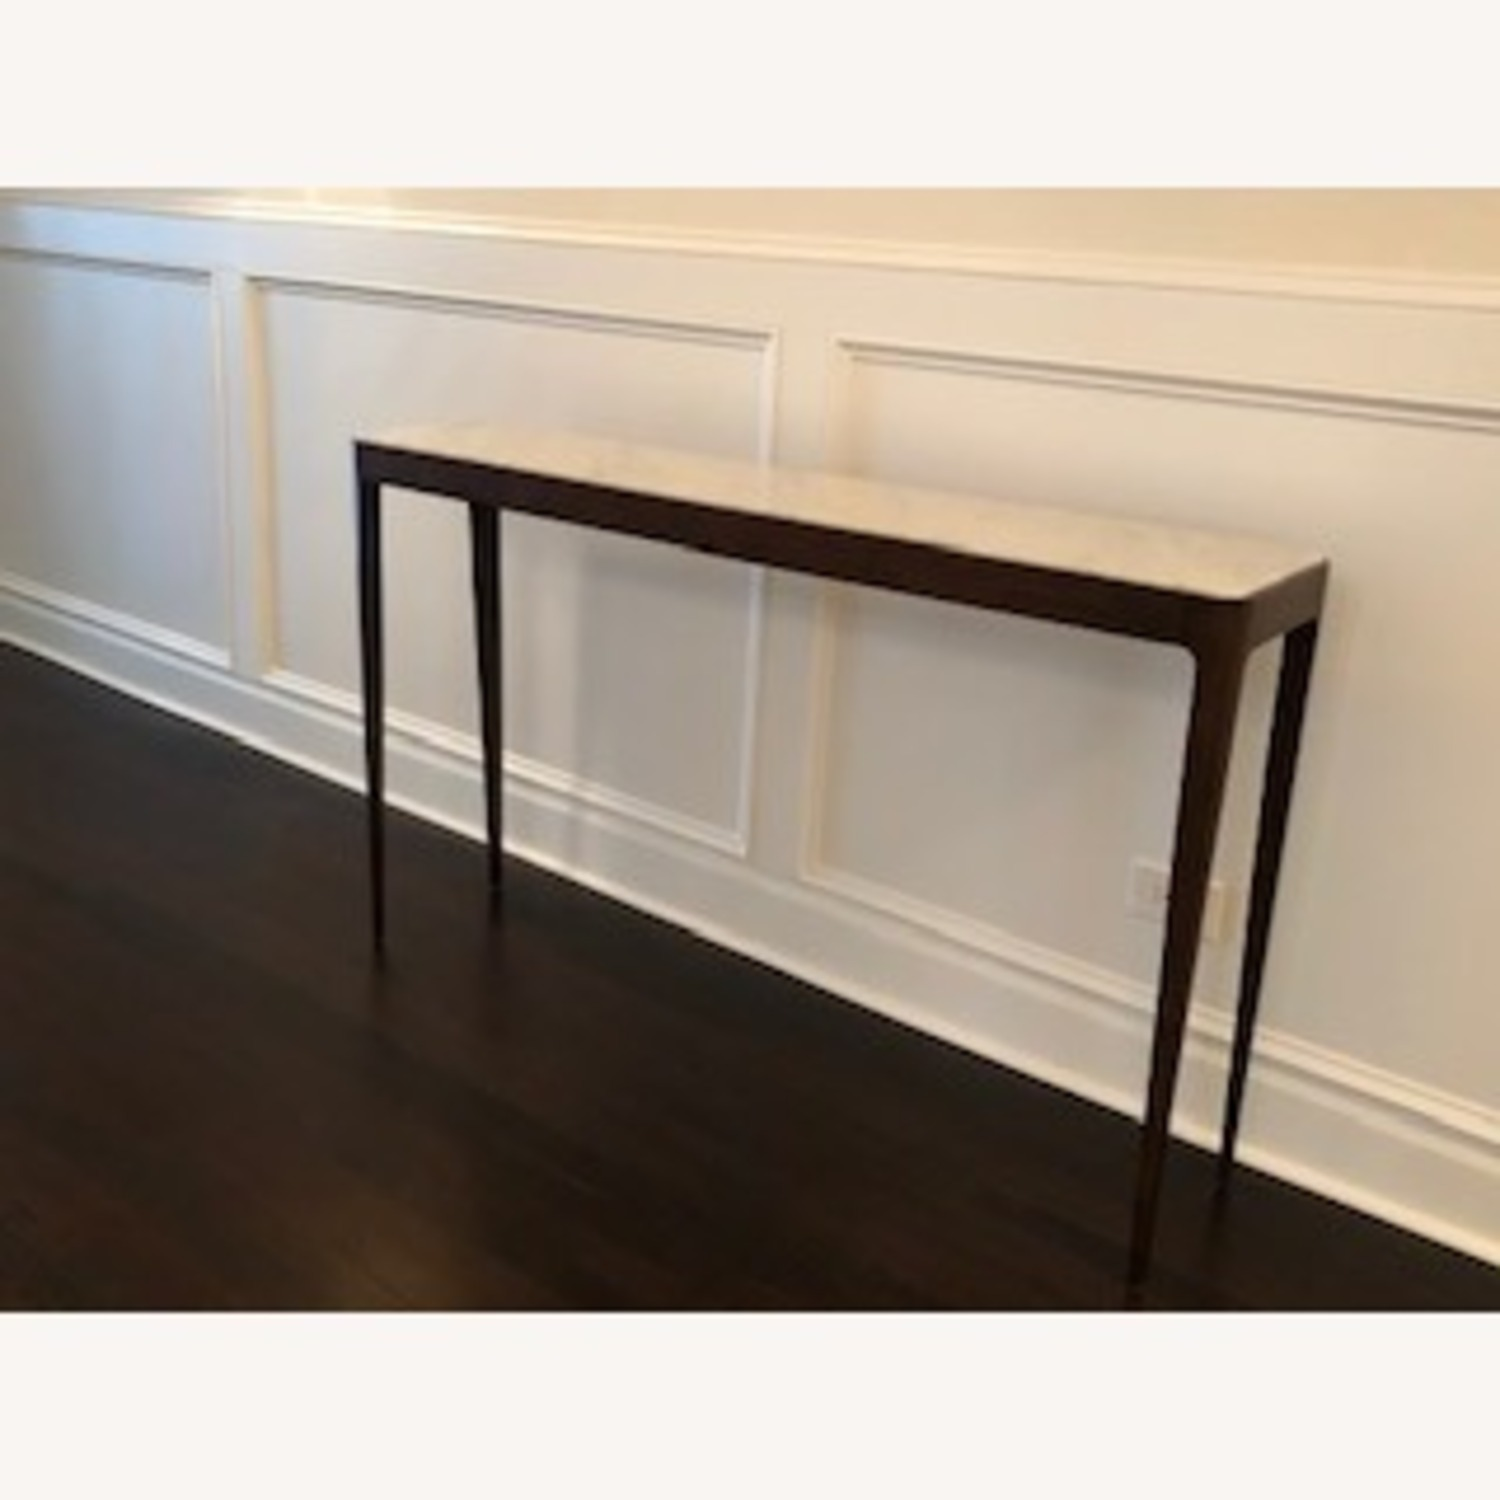 Stunning Carrera Marble and Walnut Console Table - image-1